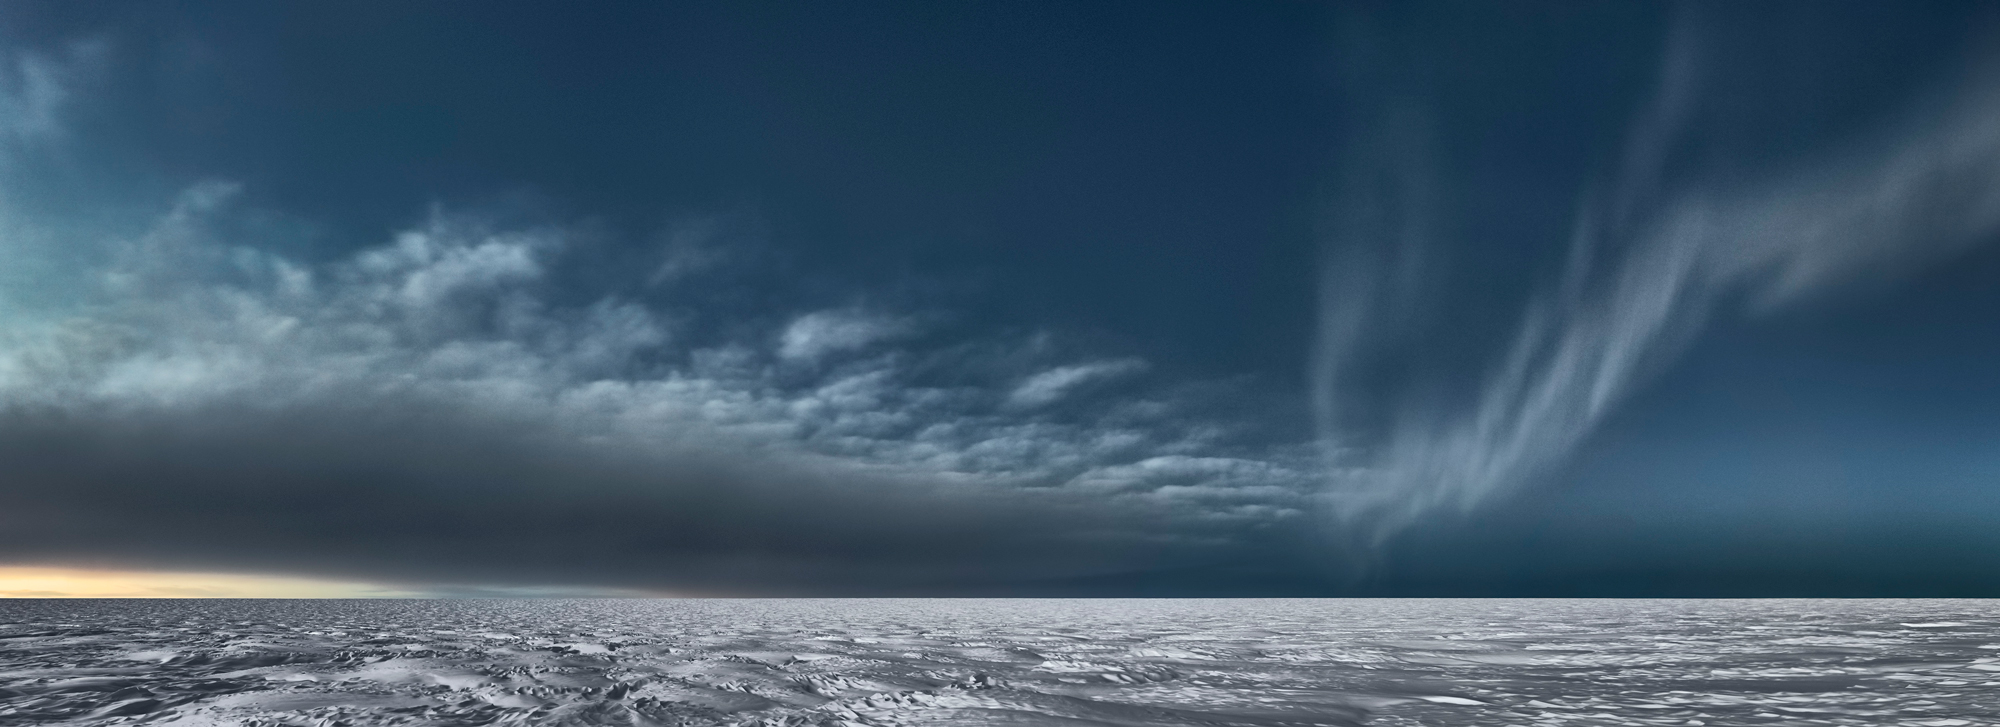 Icesheet #3373 cloud bank & aurora, 95cm x 261cm, Digital Pigment Print, Edition of 7, 2013